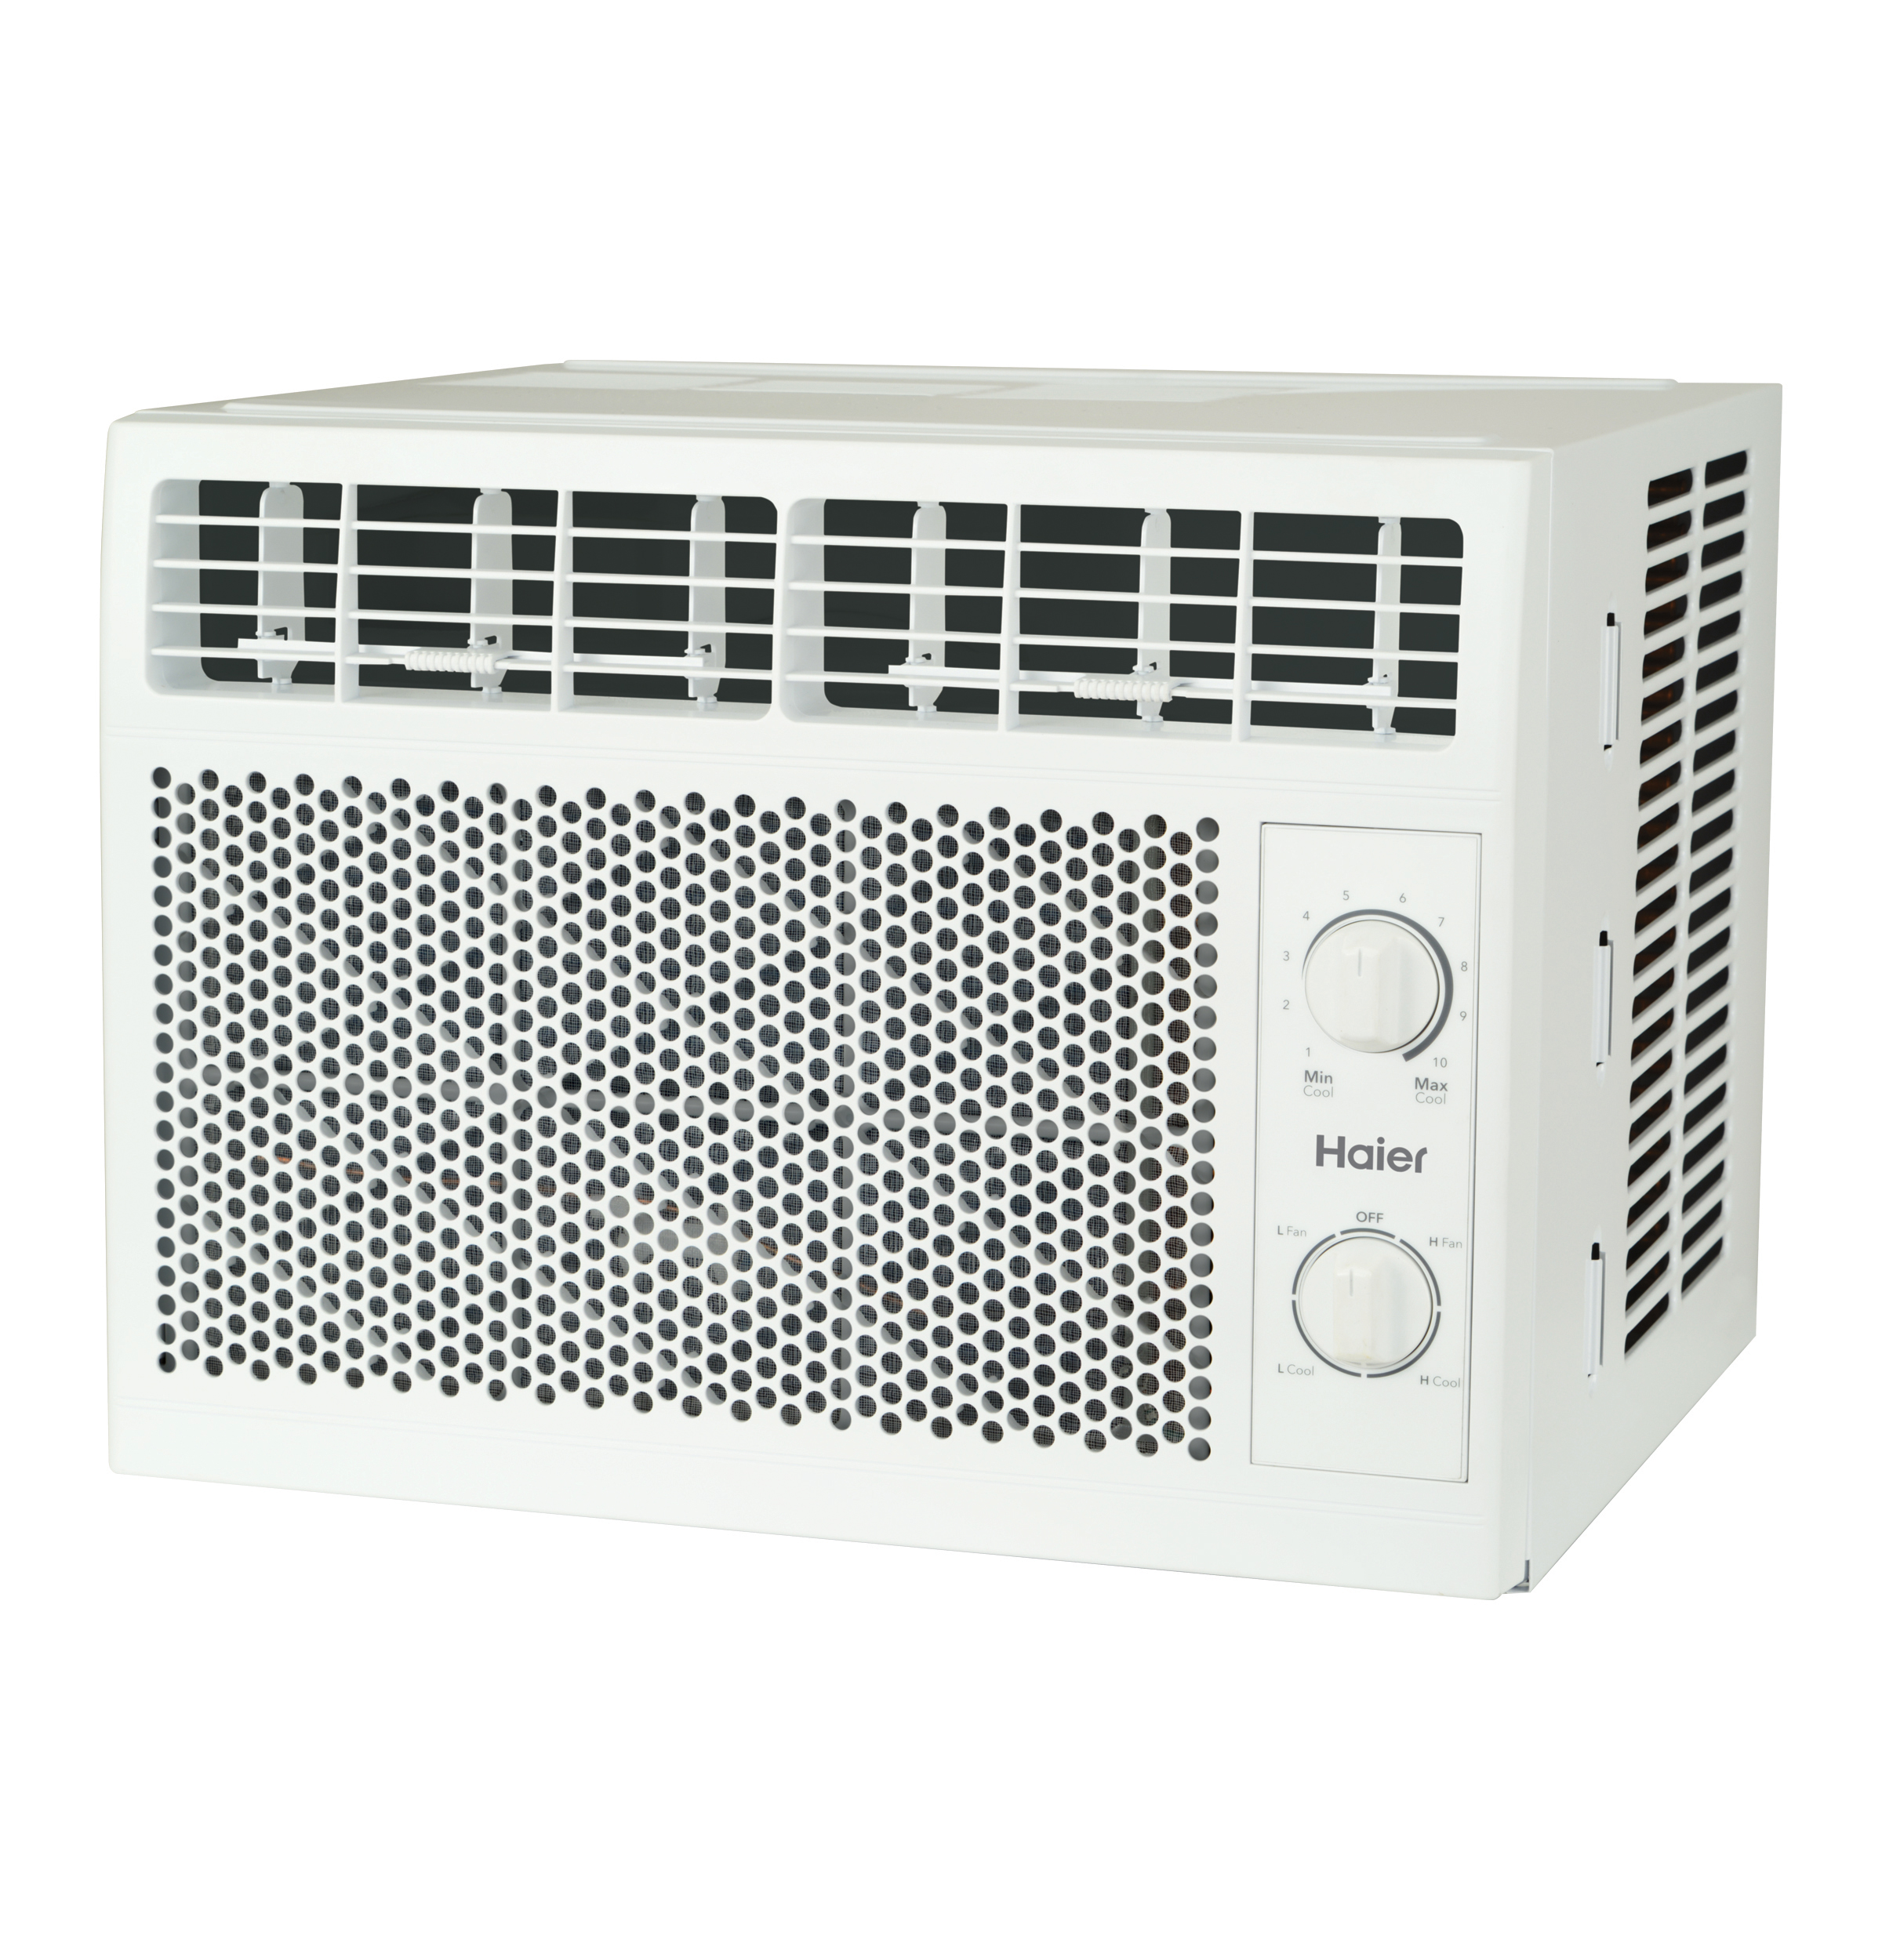 Model: QHEC05AC | Haier Haier® 5,050 BTU Mechanical Window Air Conditioner for Small Rooms up to 150 sq. ft.